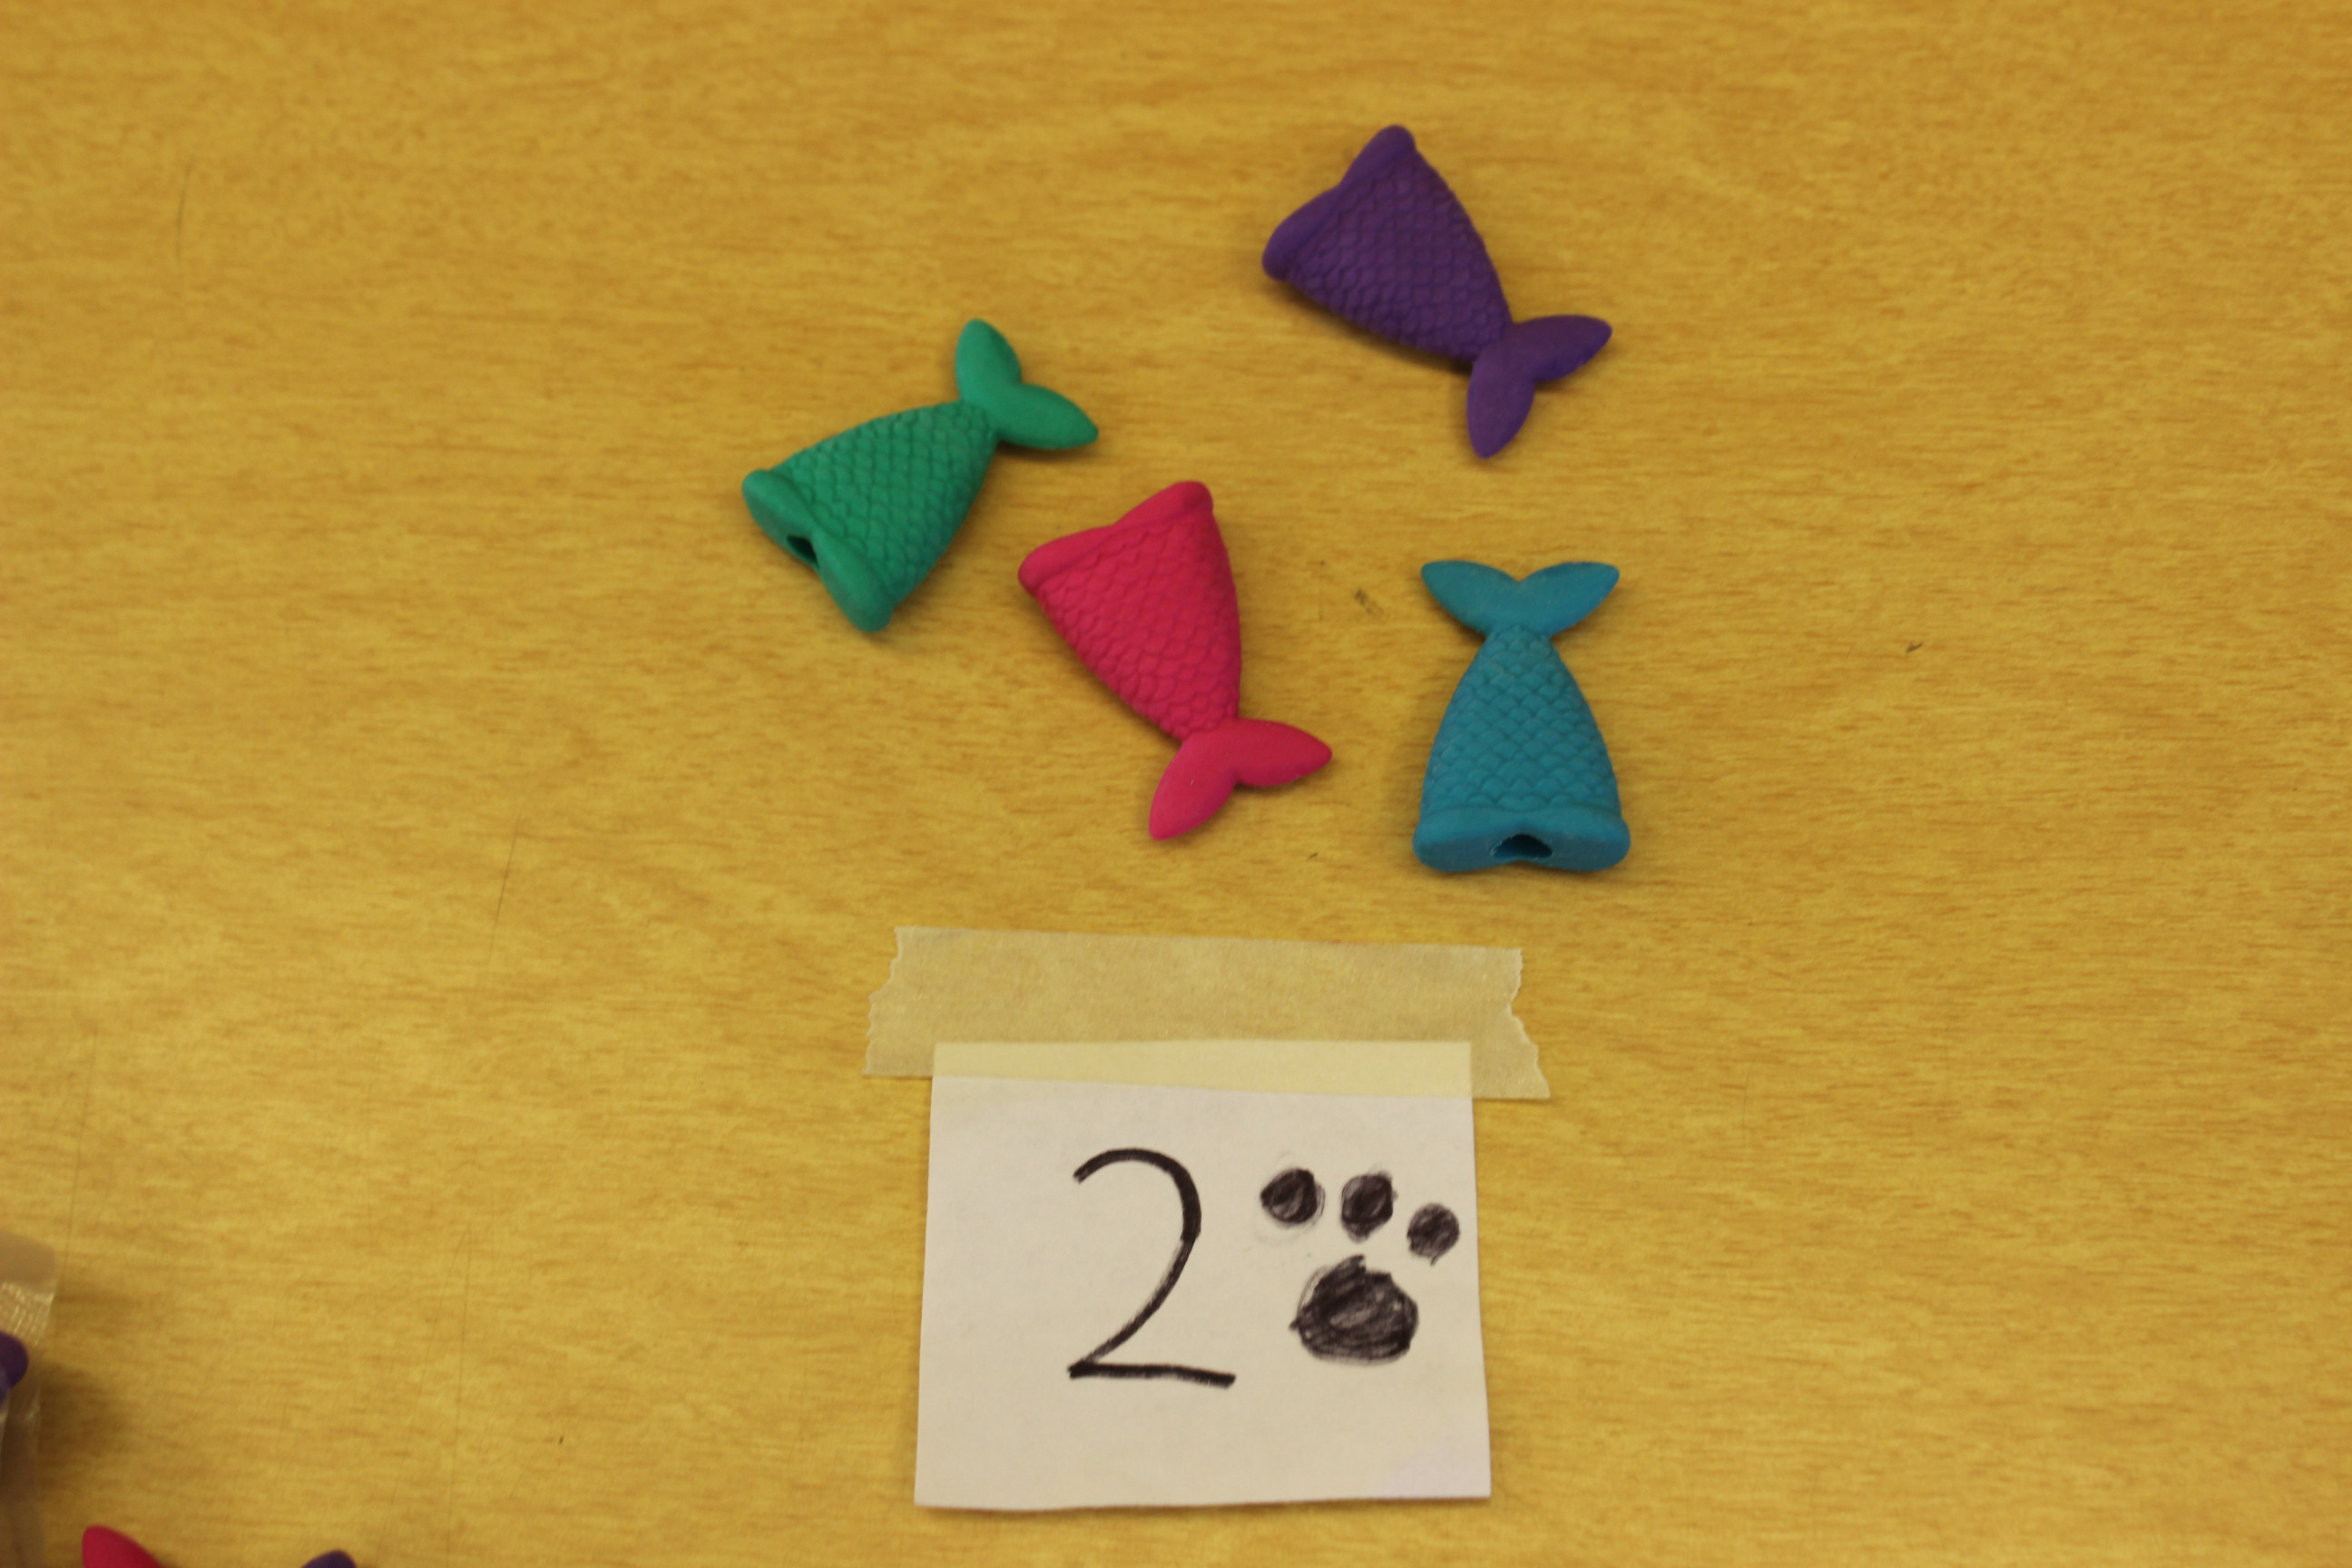 2 Paws Mermaid Tail Eraser